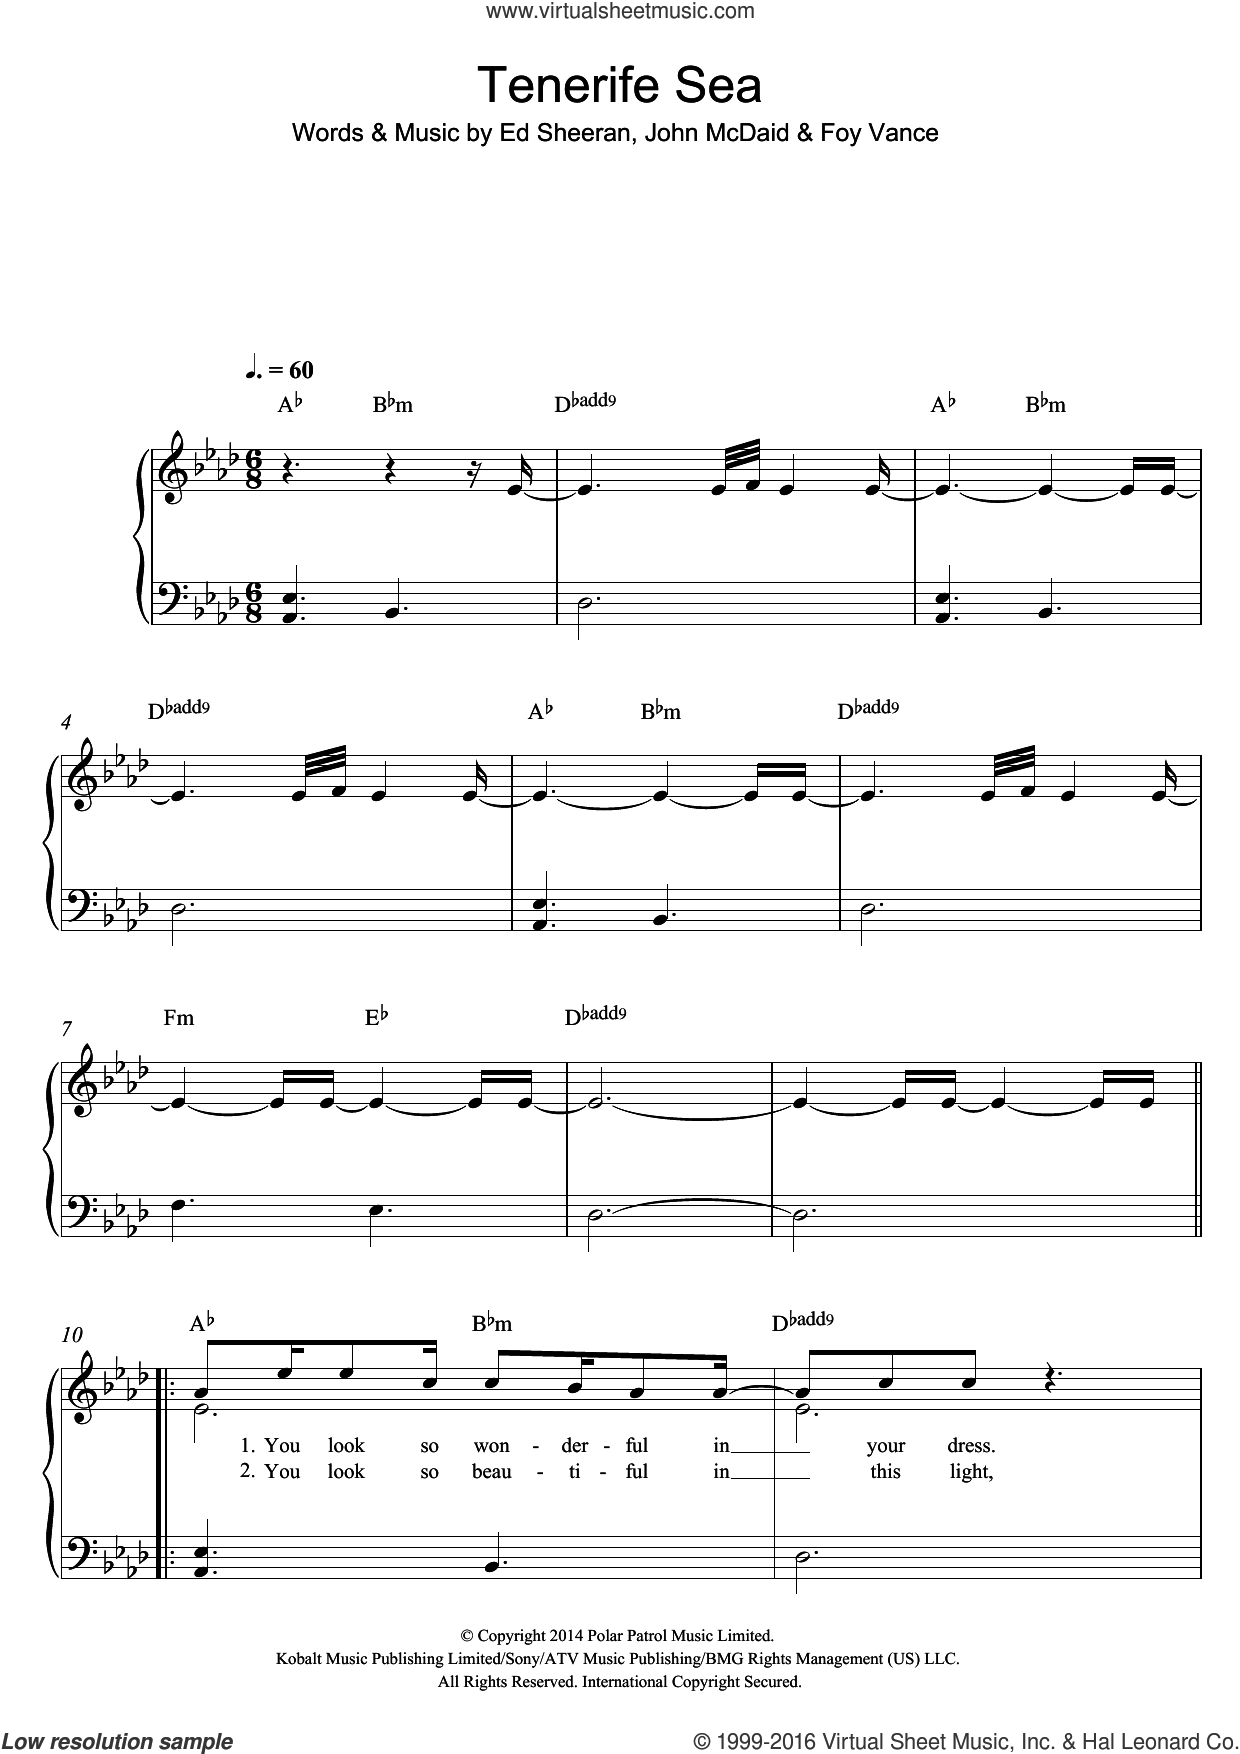 Tenerife Sea sheet music for piano solo by Ed Sheeran, Foy Vance and John McDaid, easy skill level